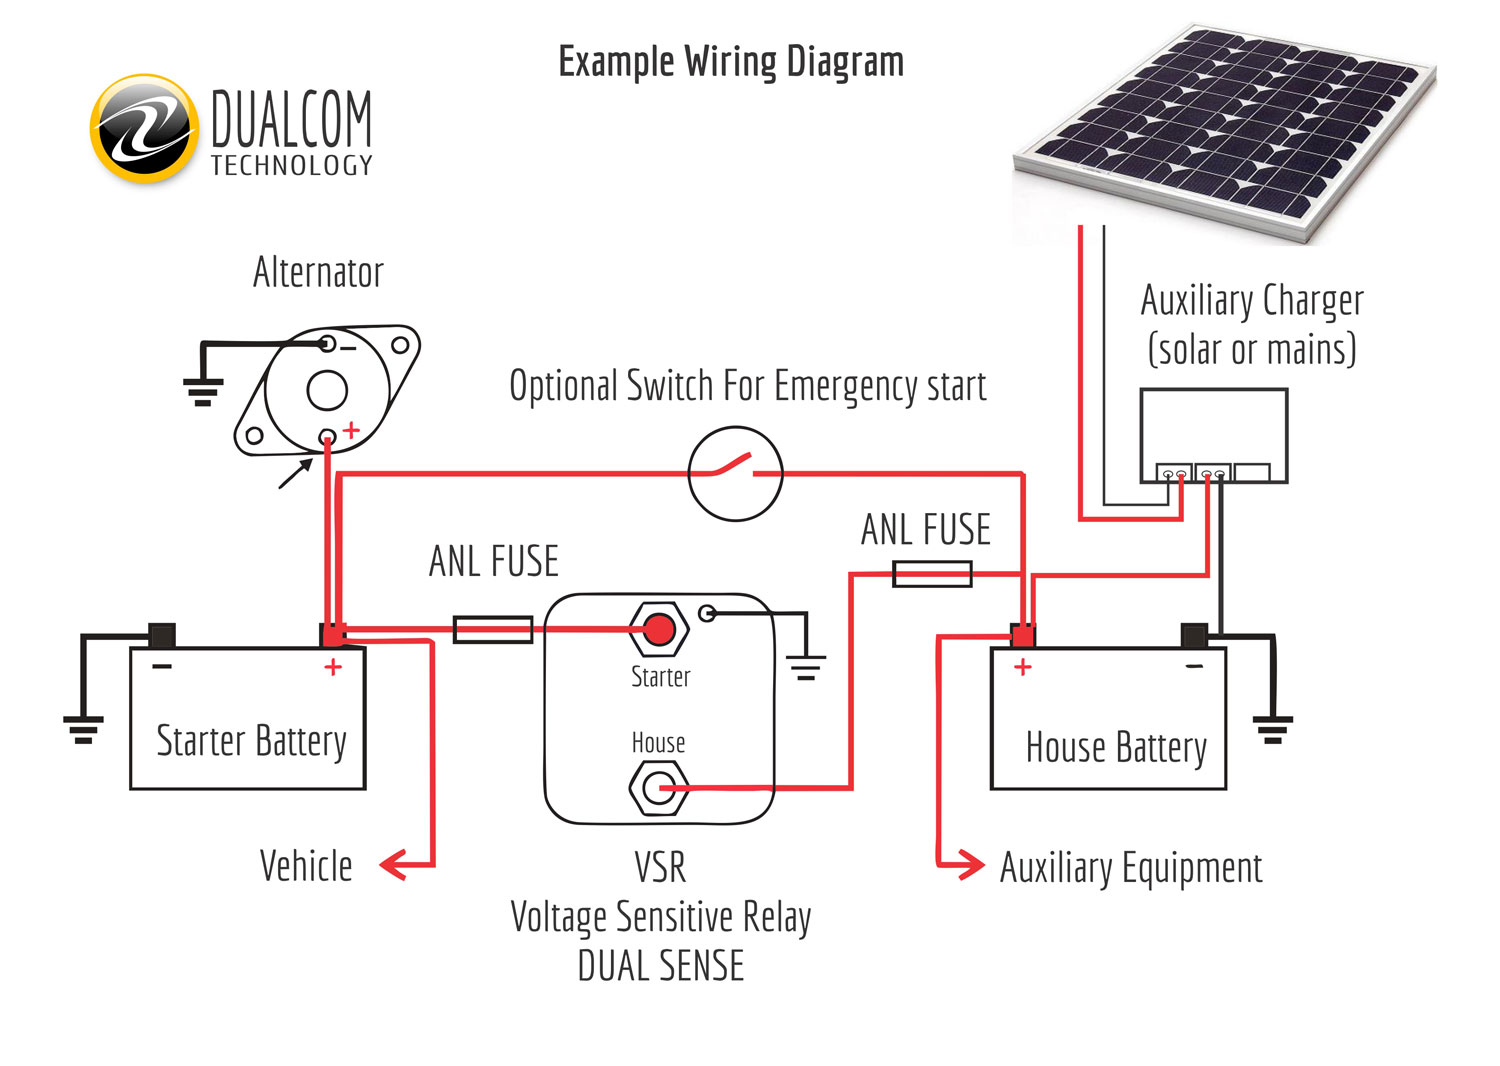 How a VSR (Voltage Sensitive Relay) works.